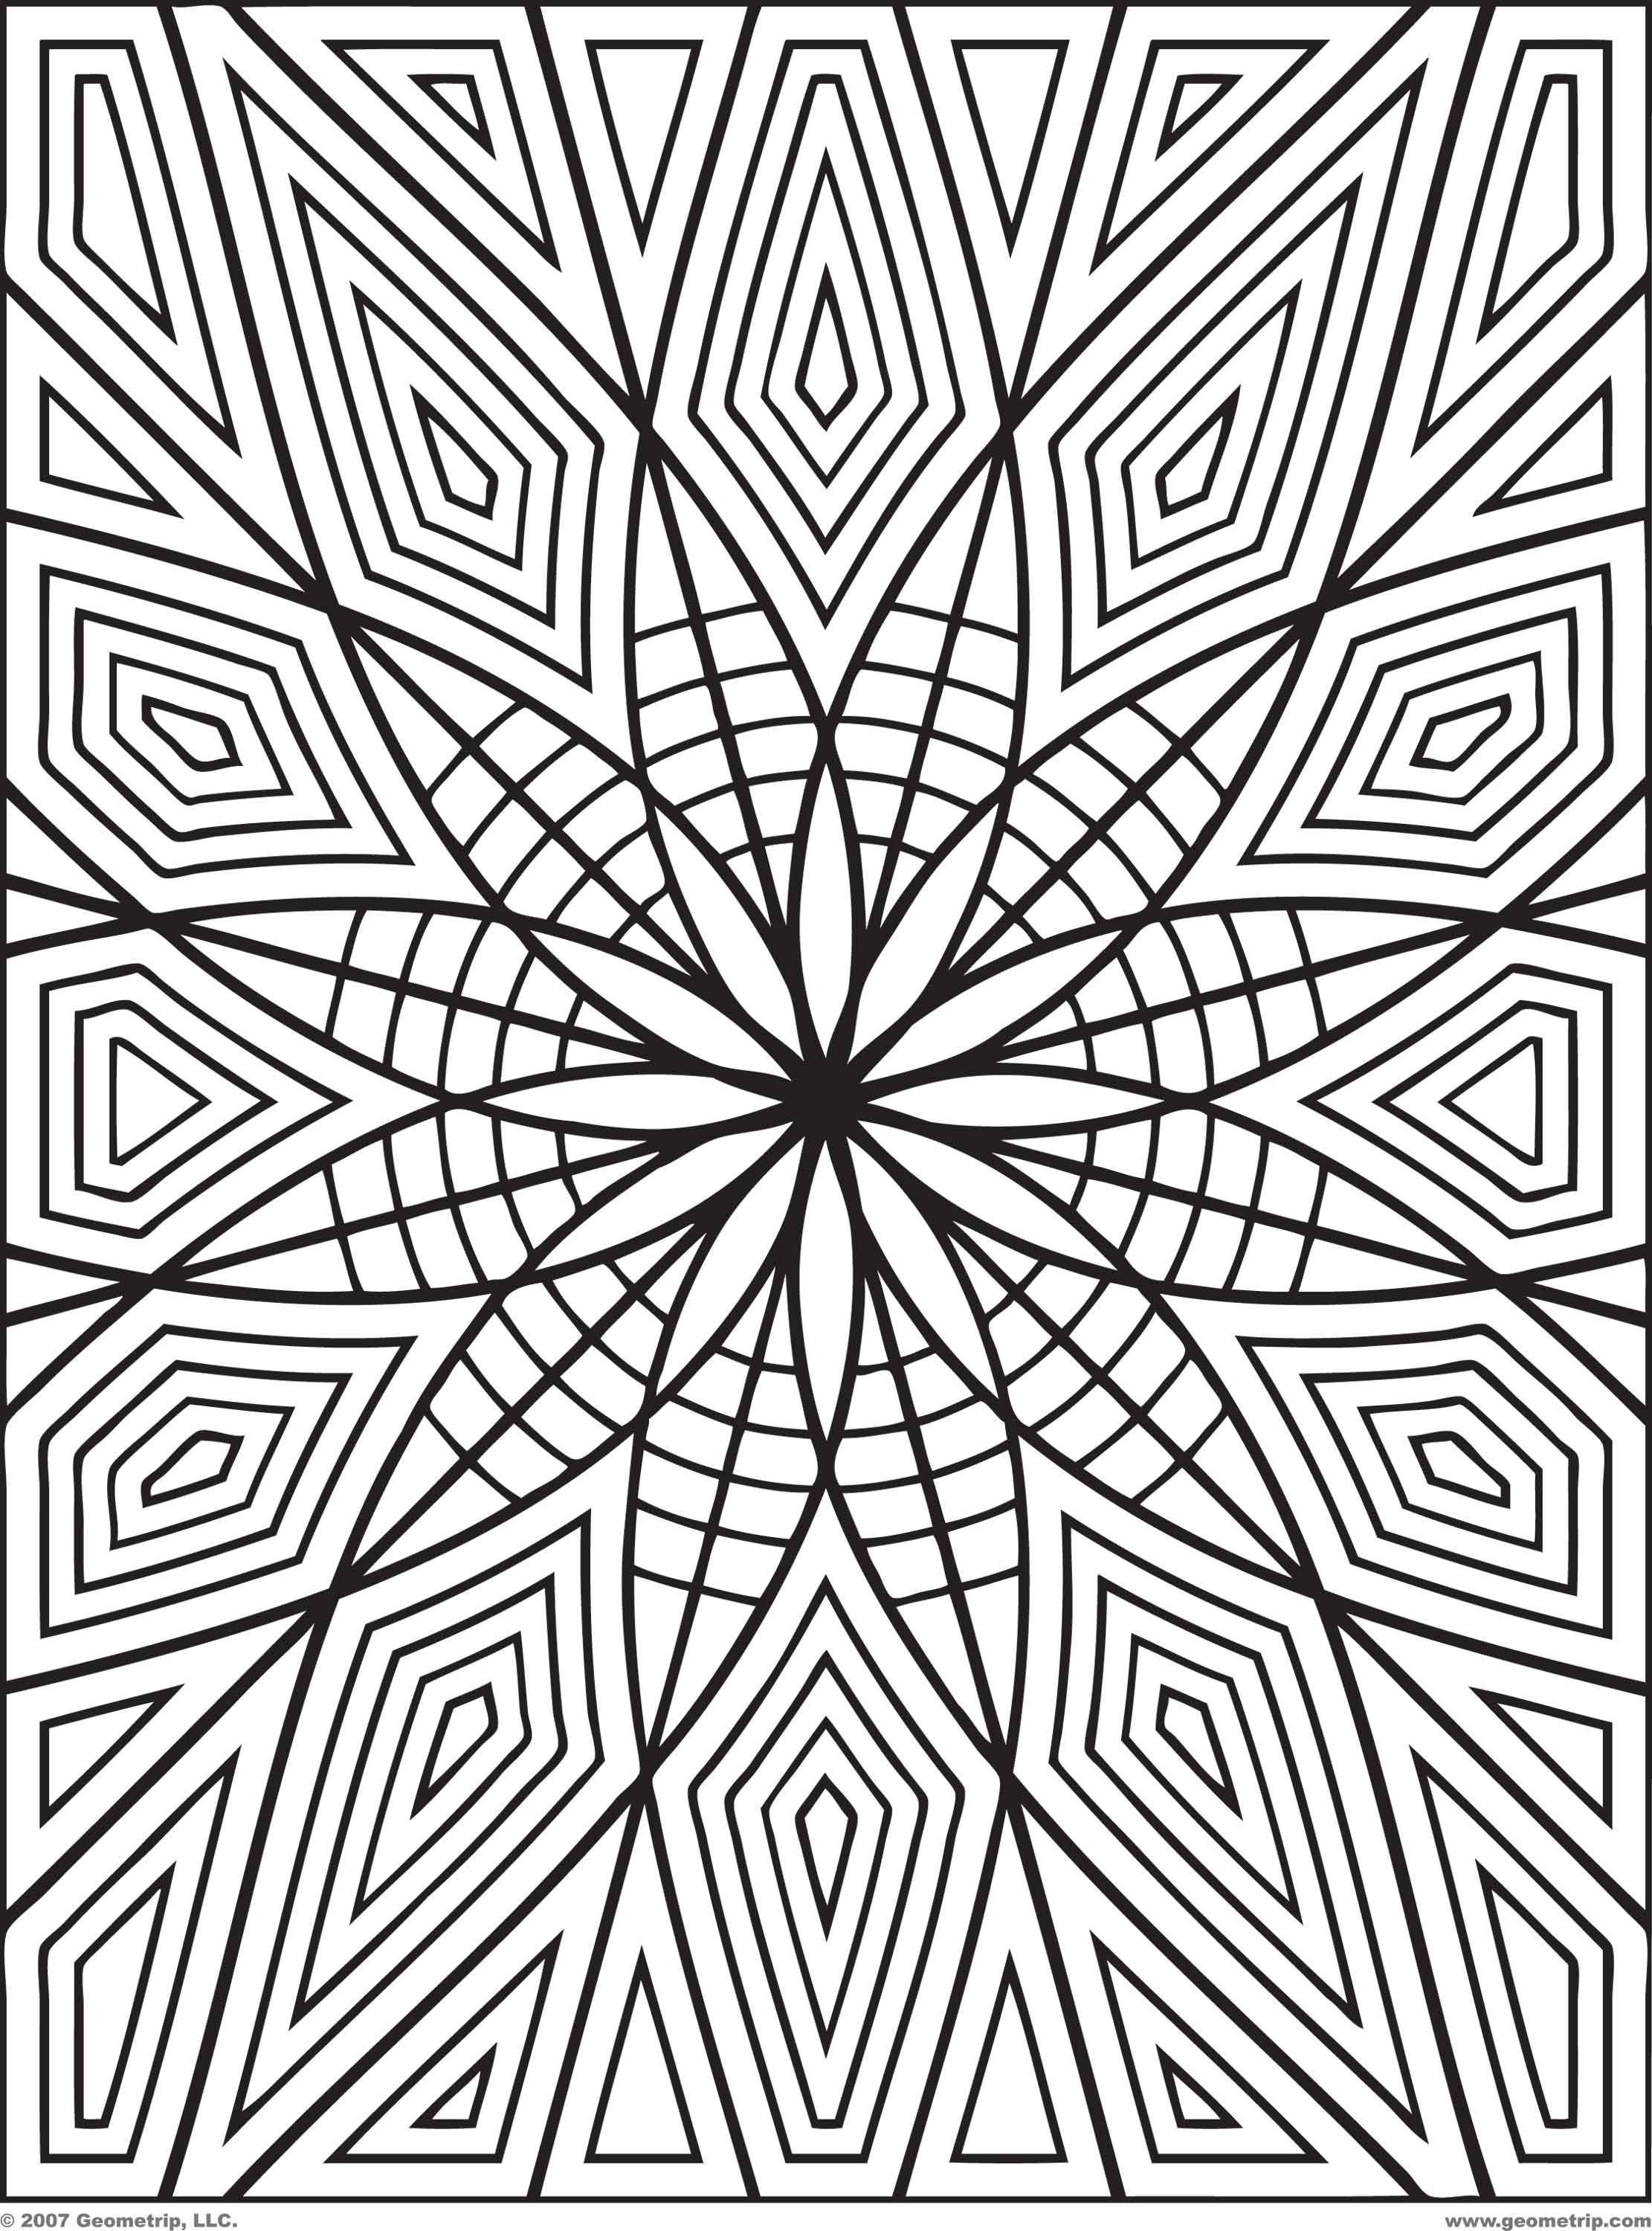 Geometrip Rects Set1 Img6 Jpg 2 222 3 000 Pixels Geometric Coloring Pages Pattern Coloring Pages Abstract Coloring Pages